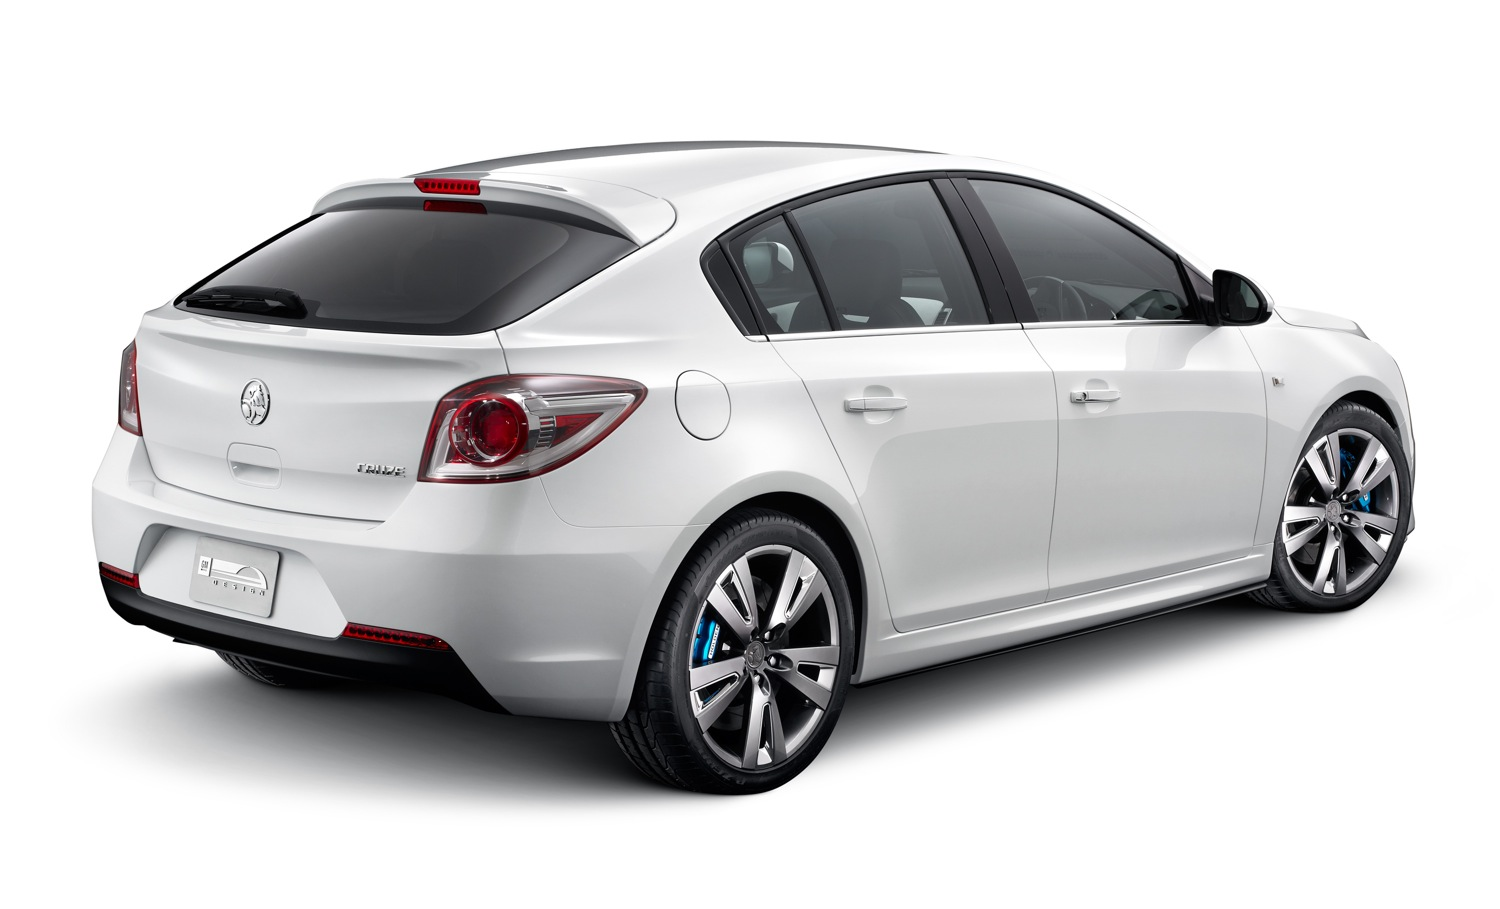 Holden cruze photo - 3